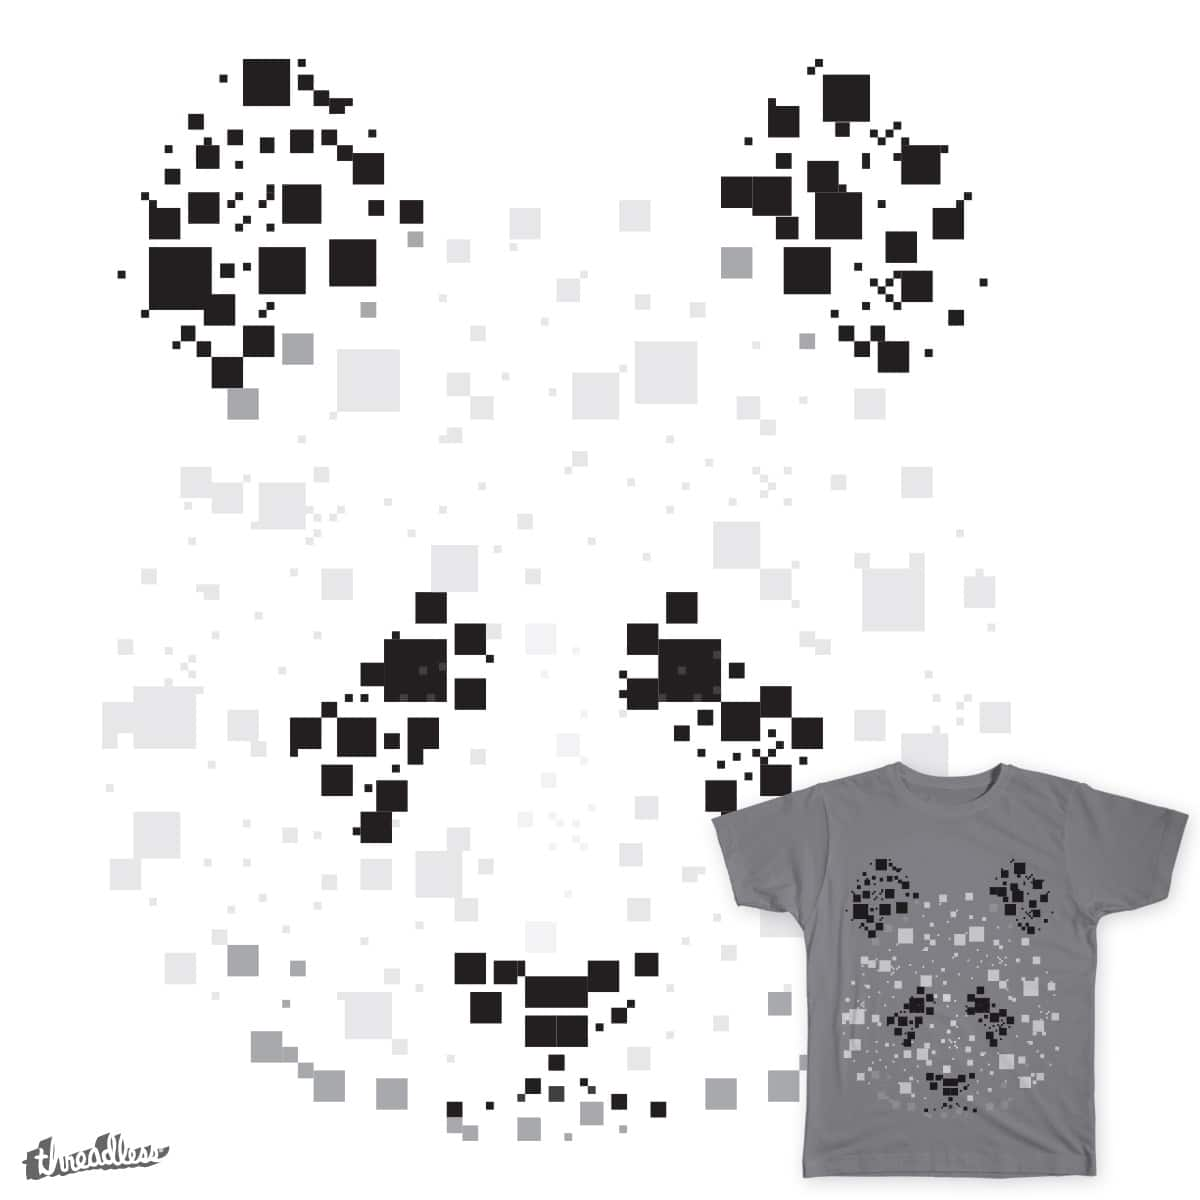 Pixelated Panda by sknny on Threadless